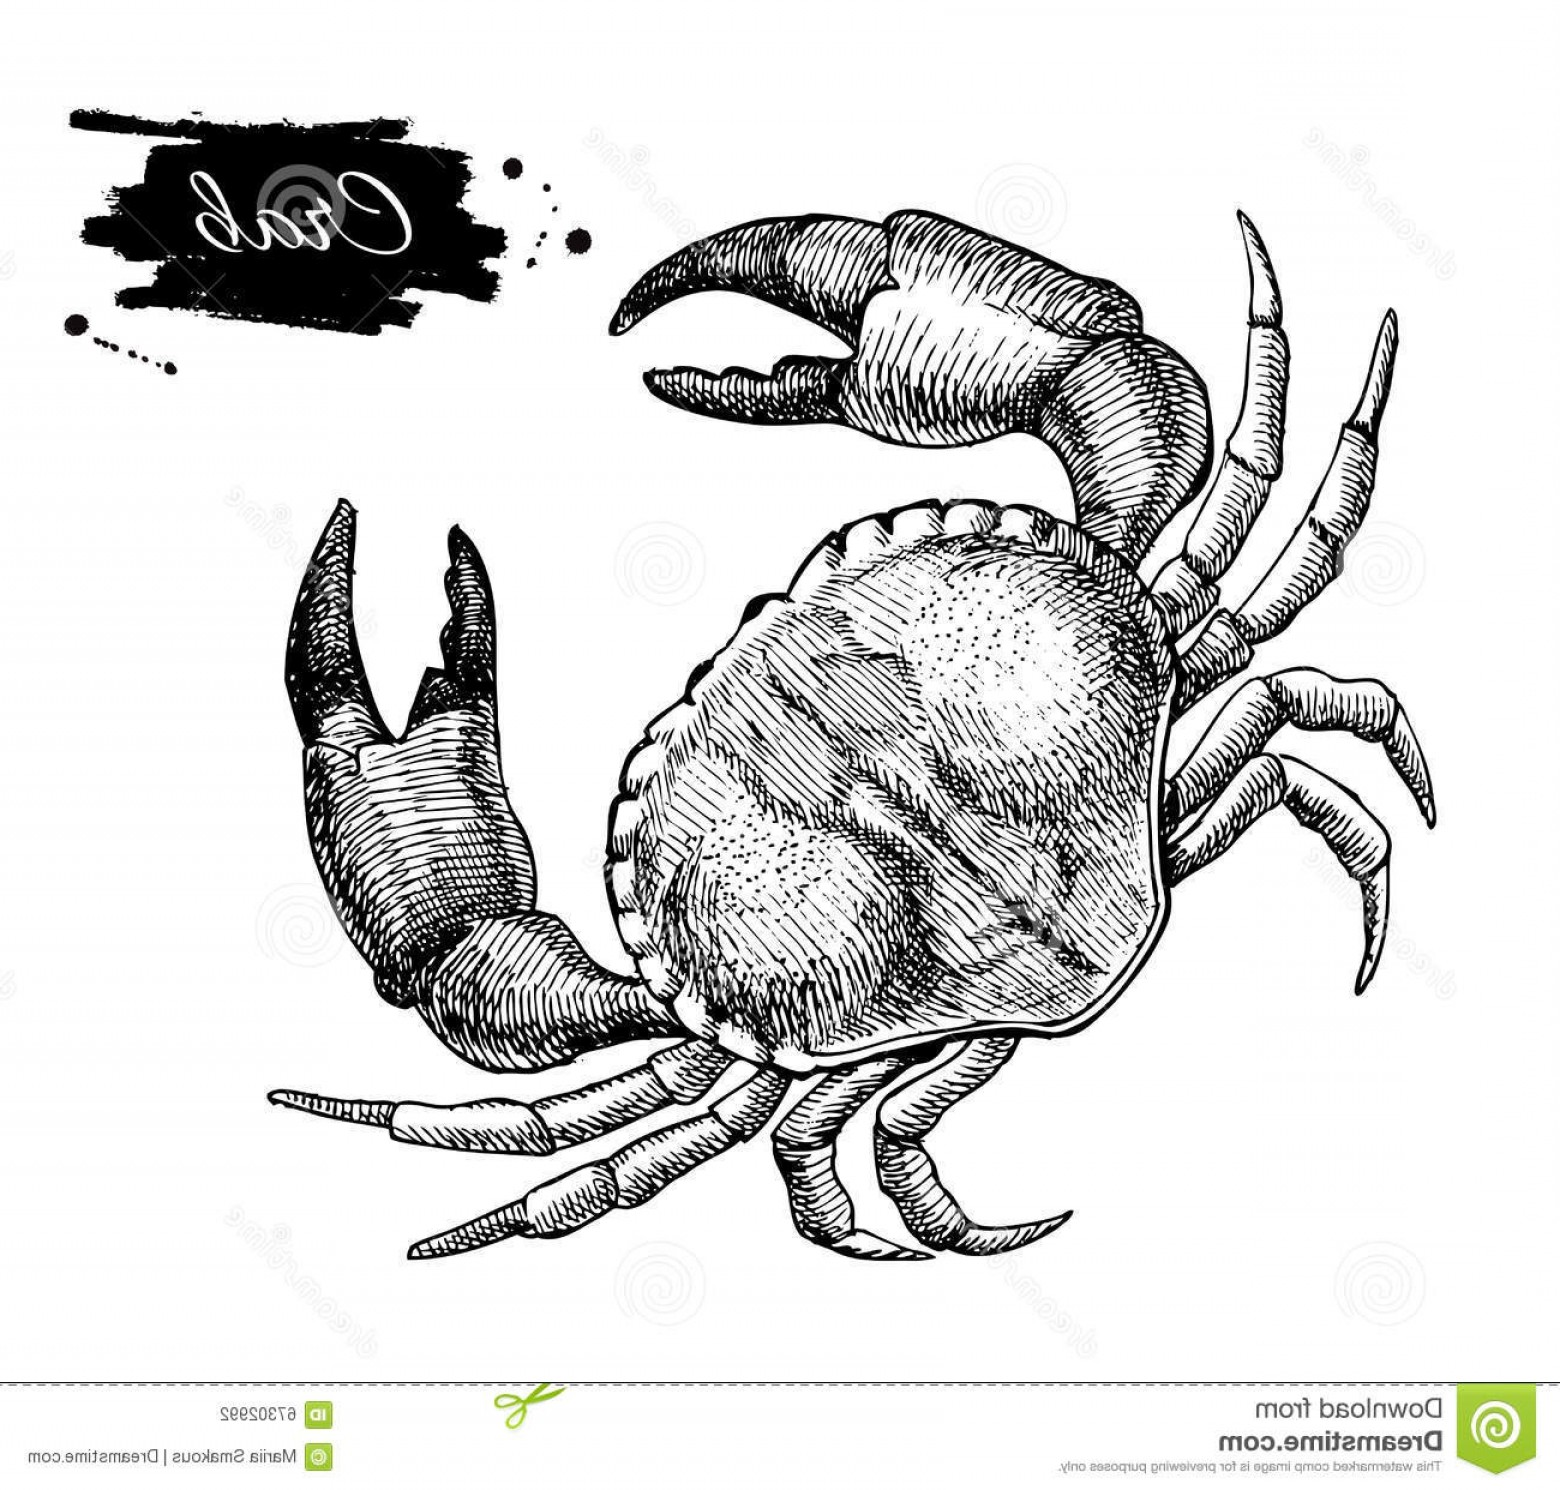 Crab Vector Black: Stock Illustration Vector Vintage Crab Drawing Hand Drawn Monochrome Seafood Illus Illustration Great Menu Poster Label Image